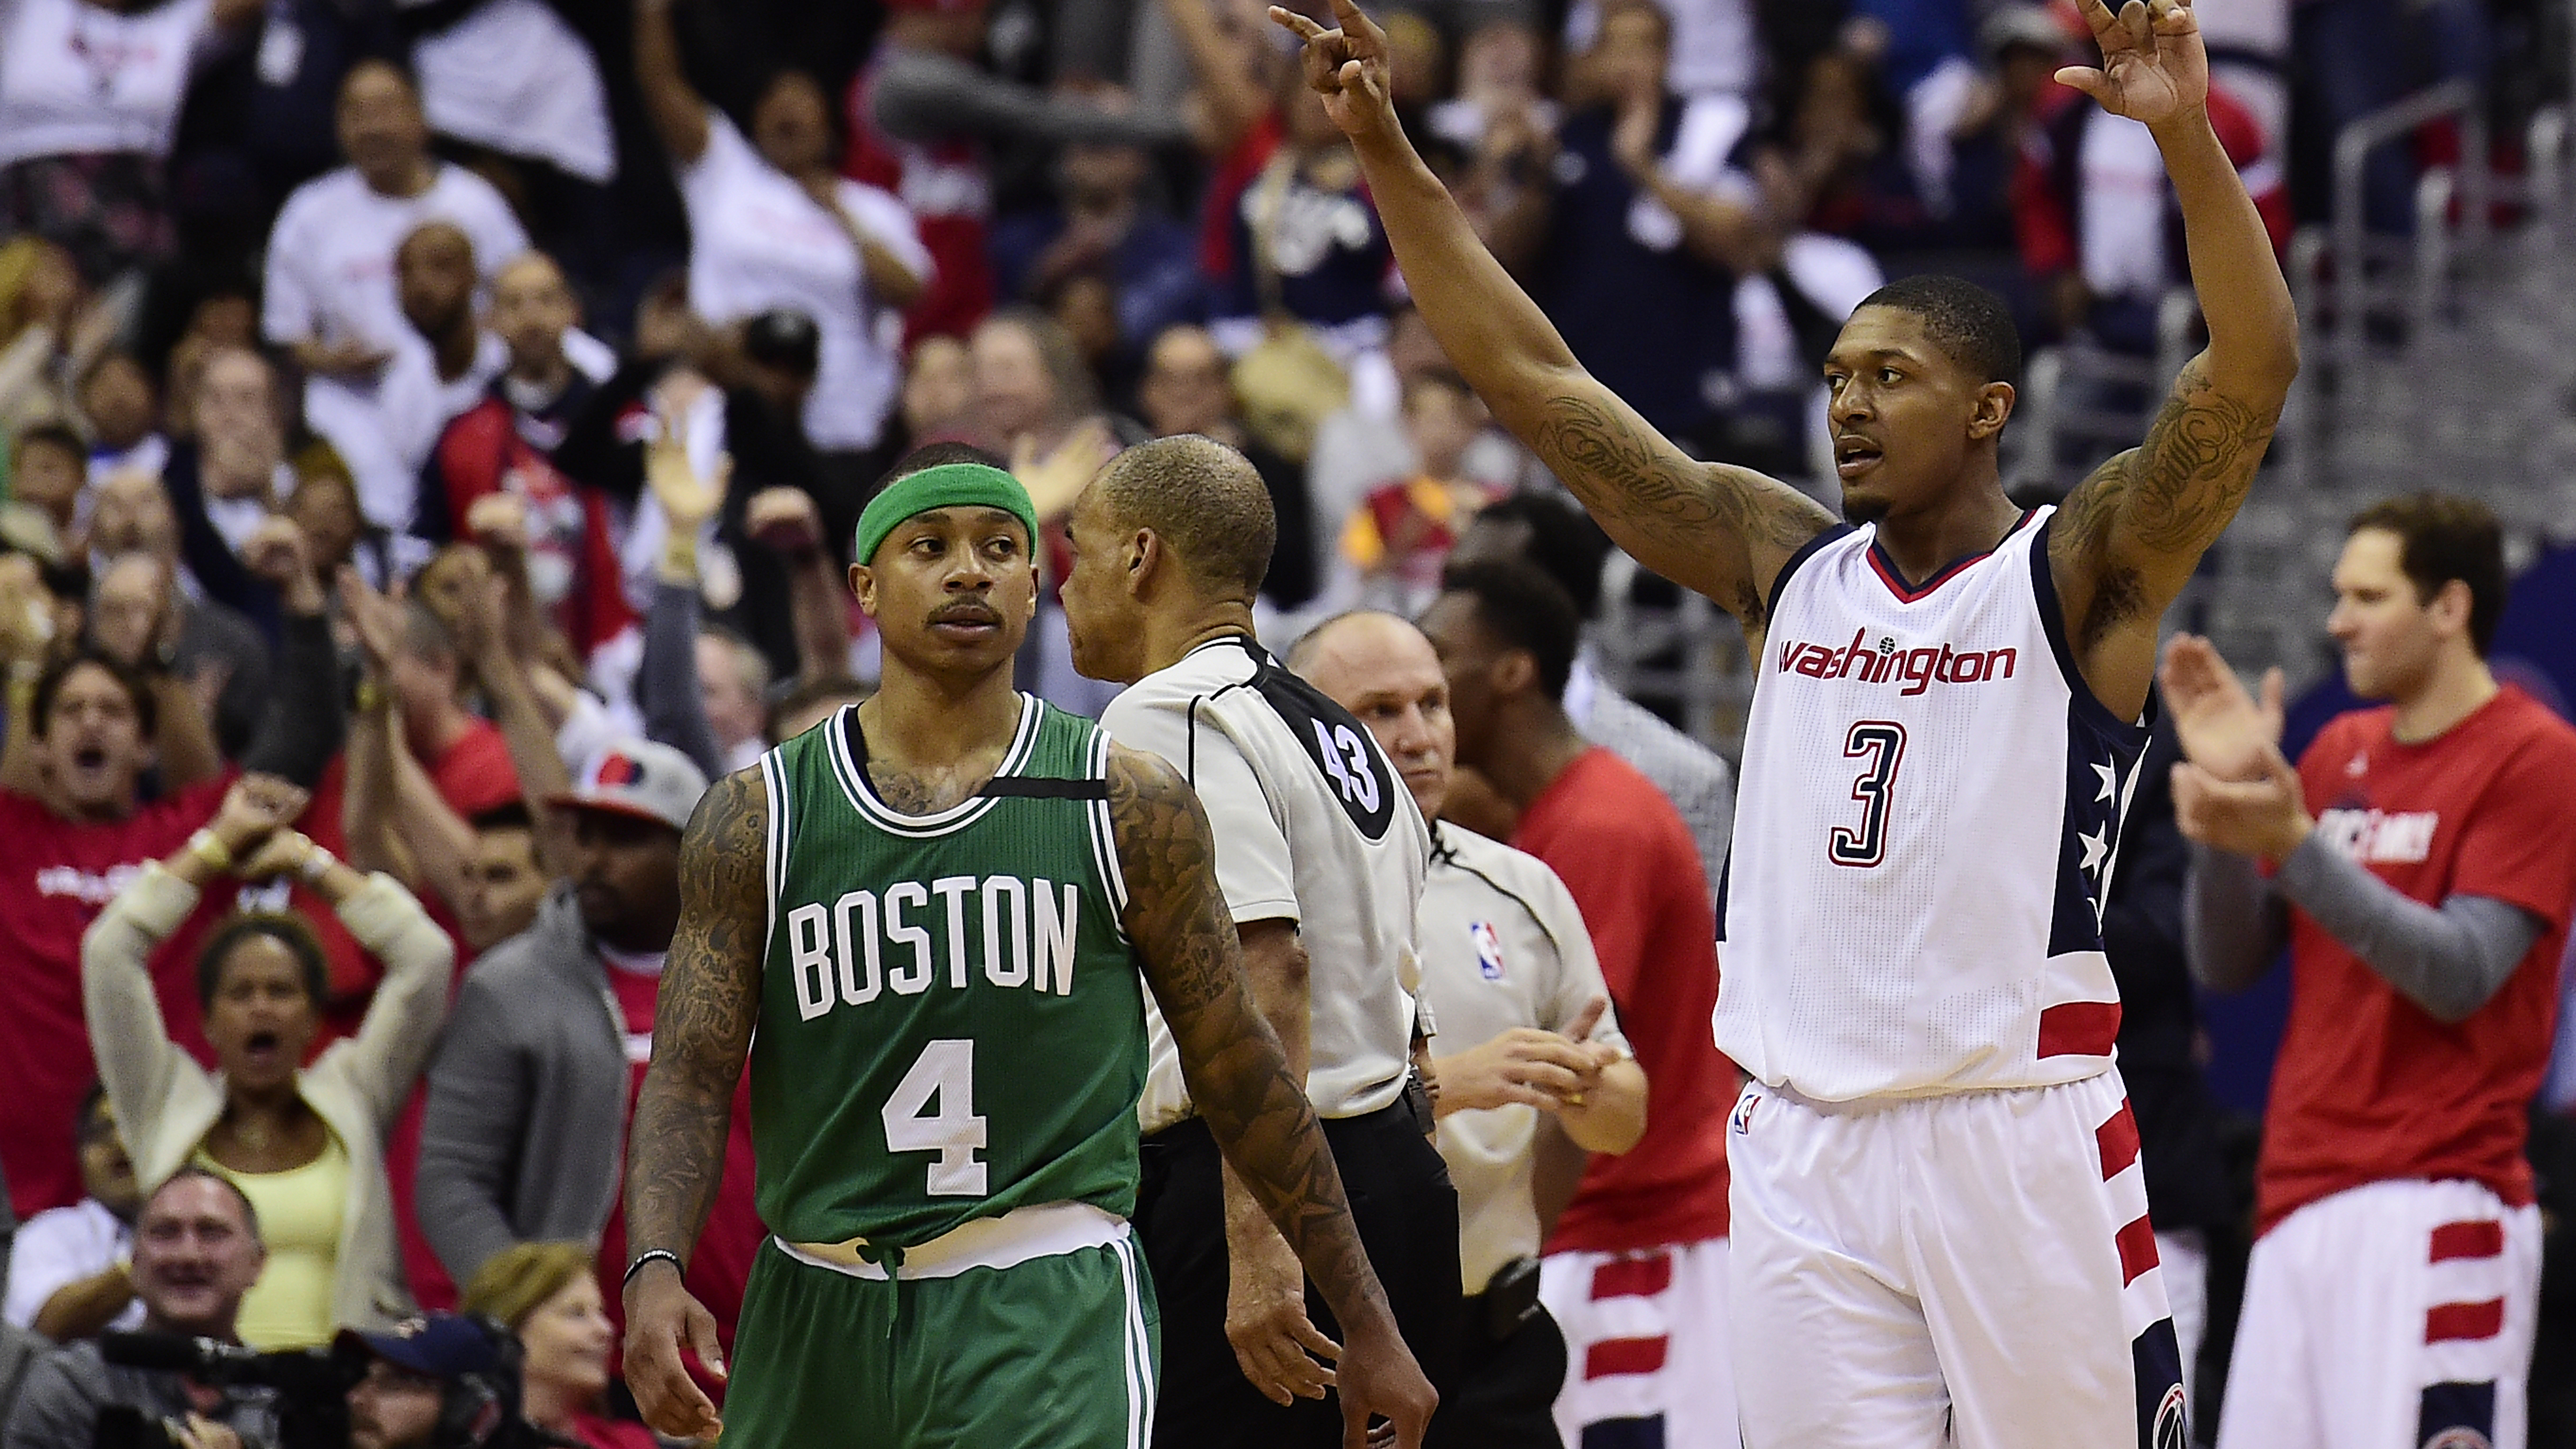 Boston Celtics v Washington Wizards – Game Four